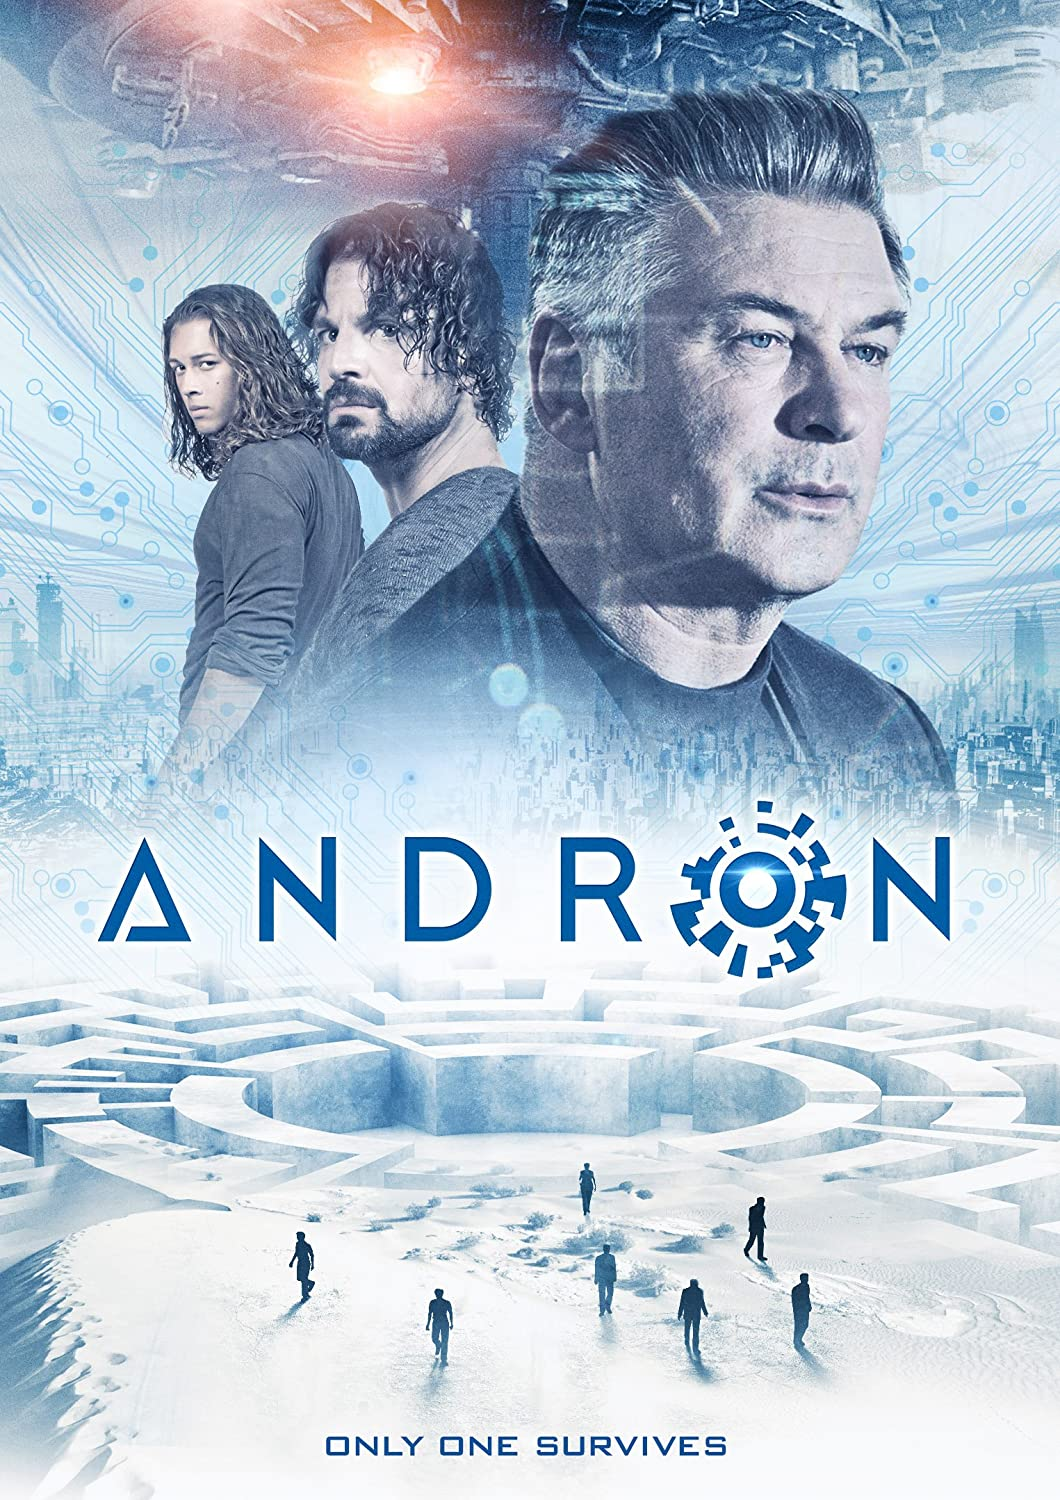 Andron The Black Labyrinth 2016 HDRip XviD AC3-EVO 1.5 Gb